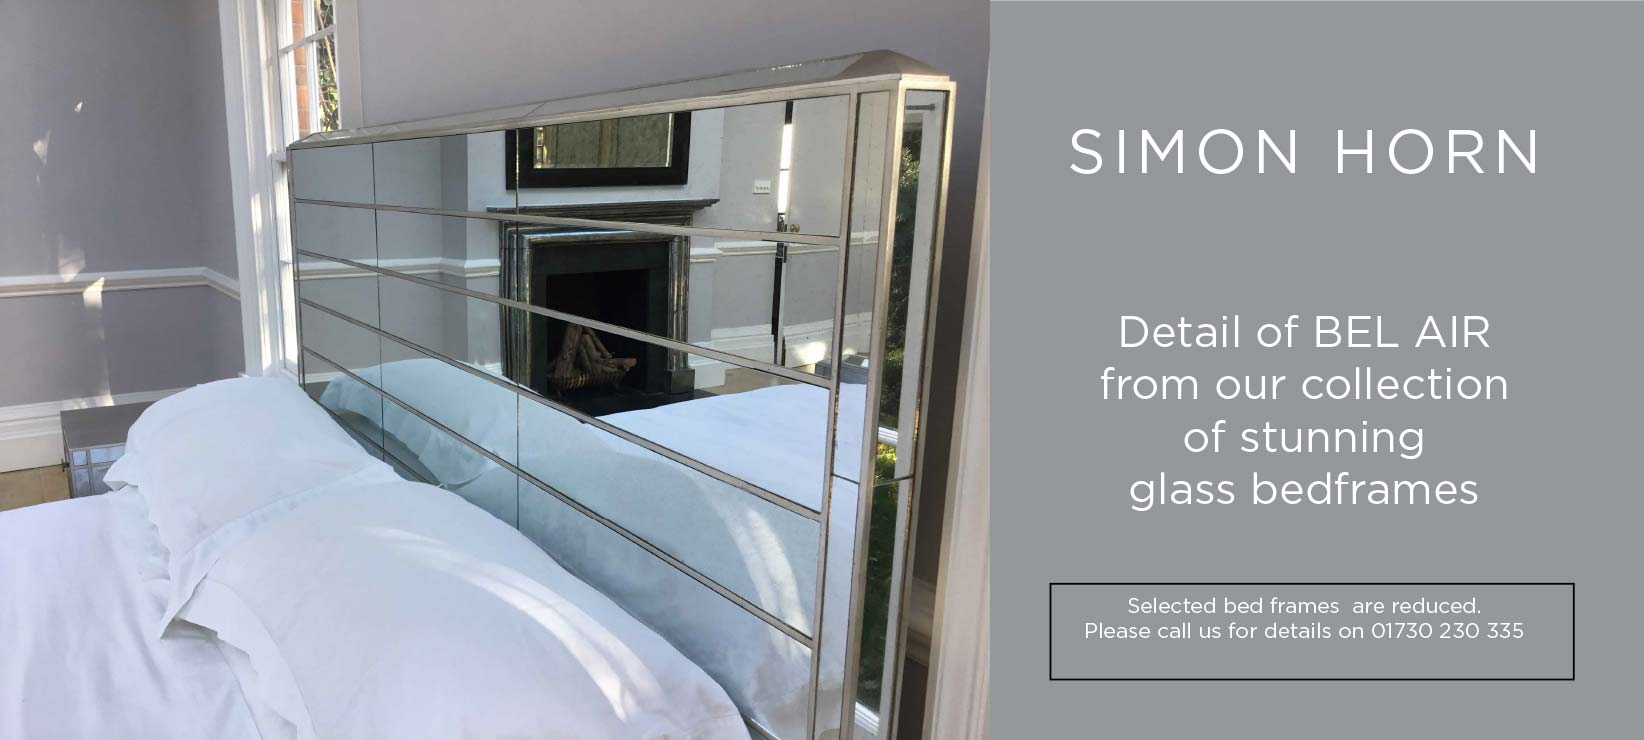 Stunning Bel Air Glass Bedframe From Simon Horn